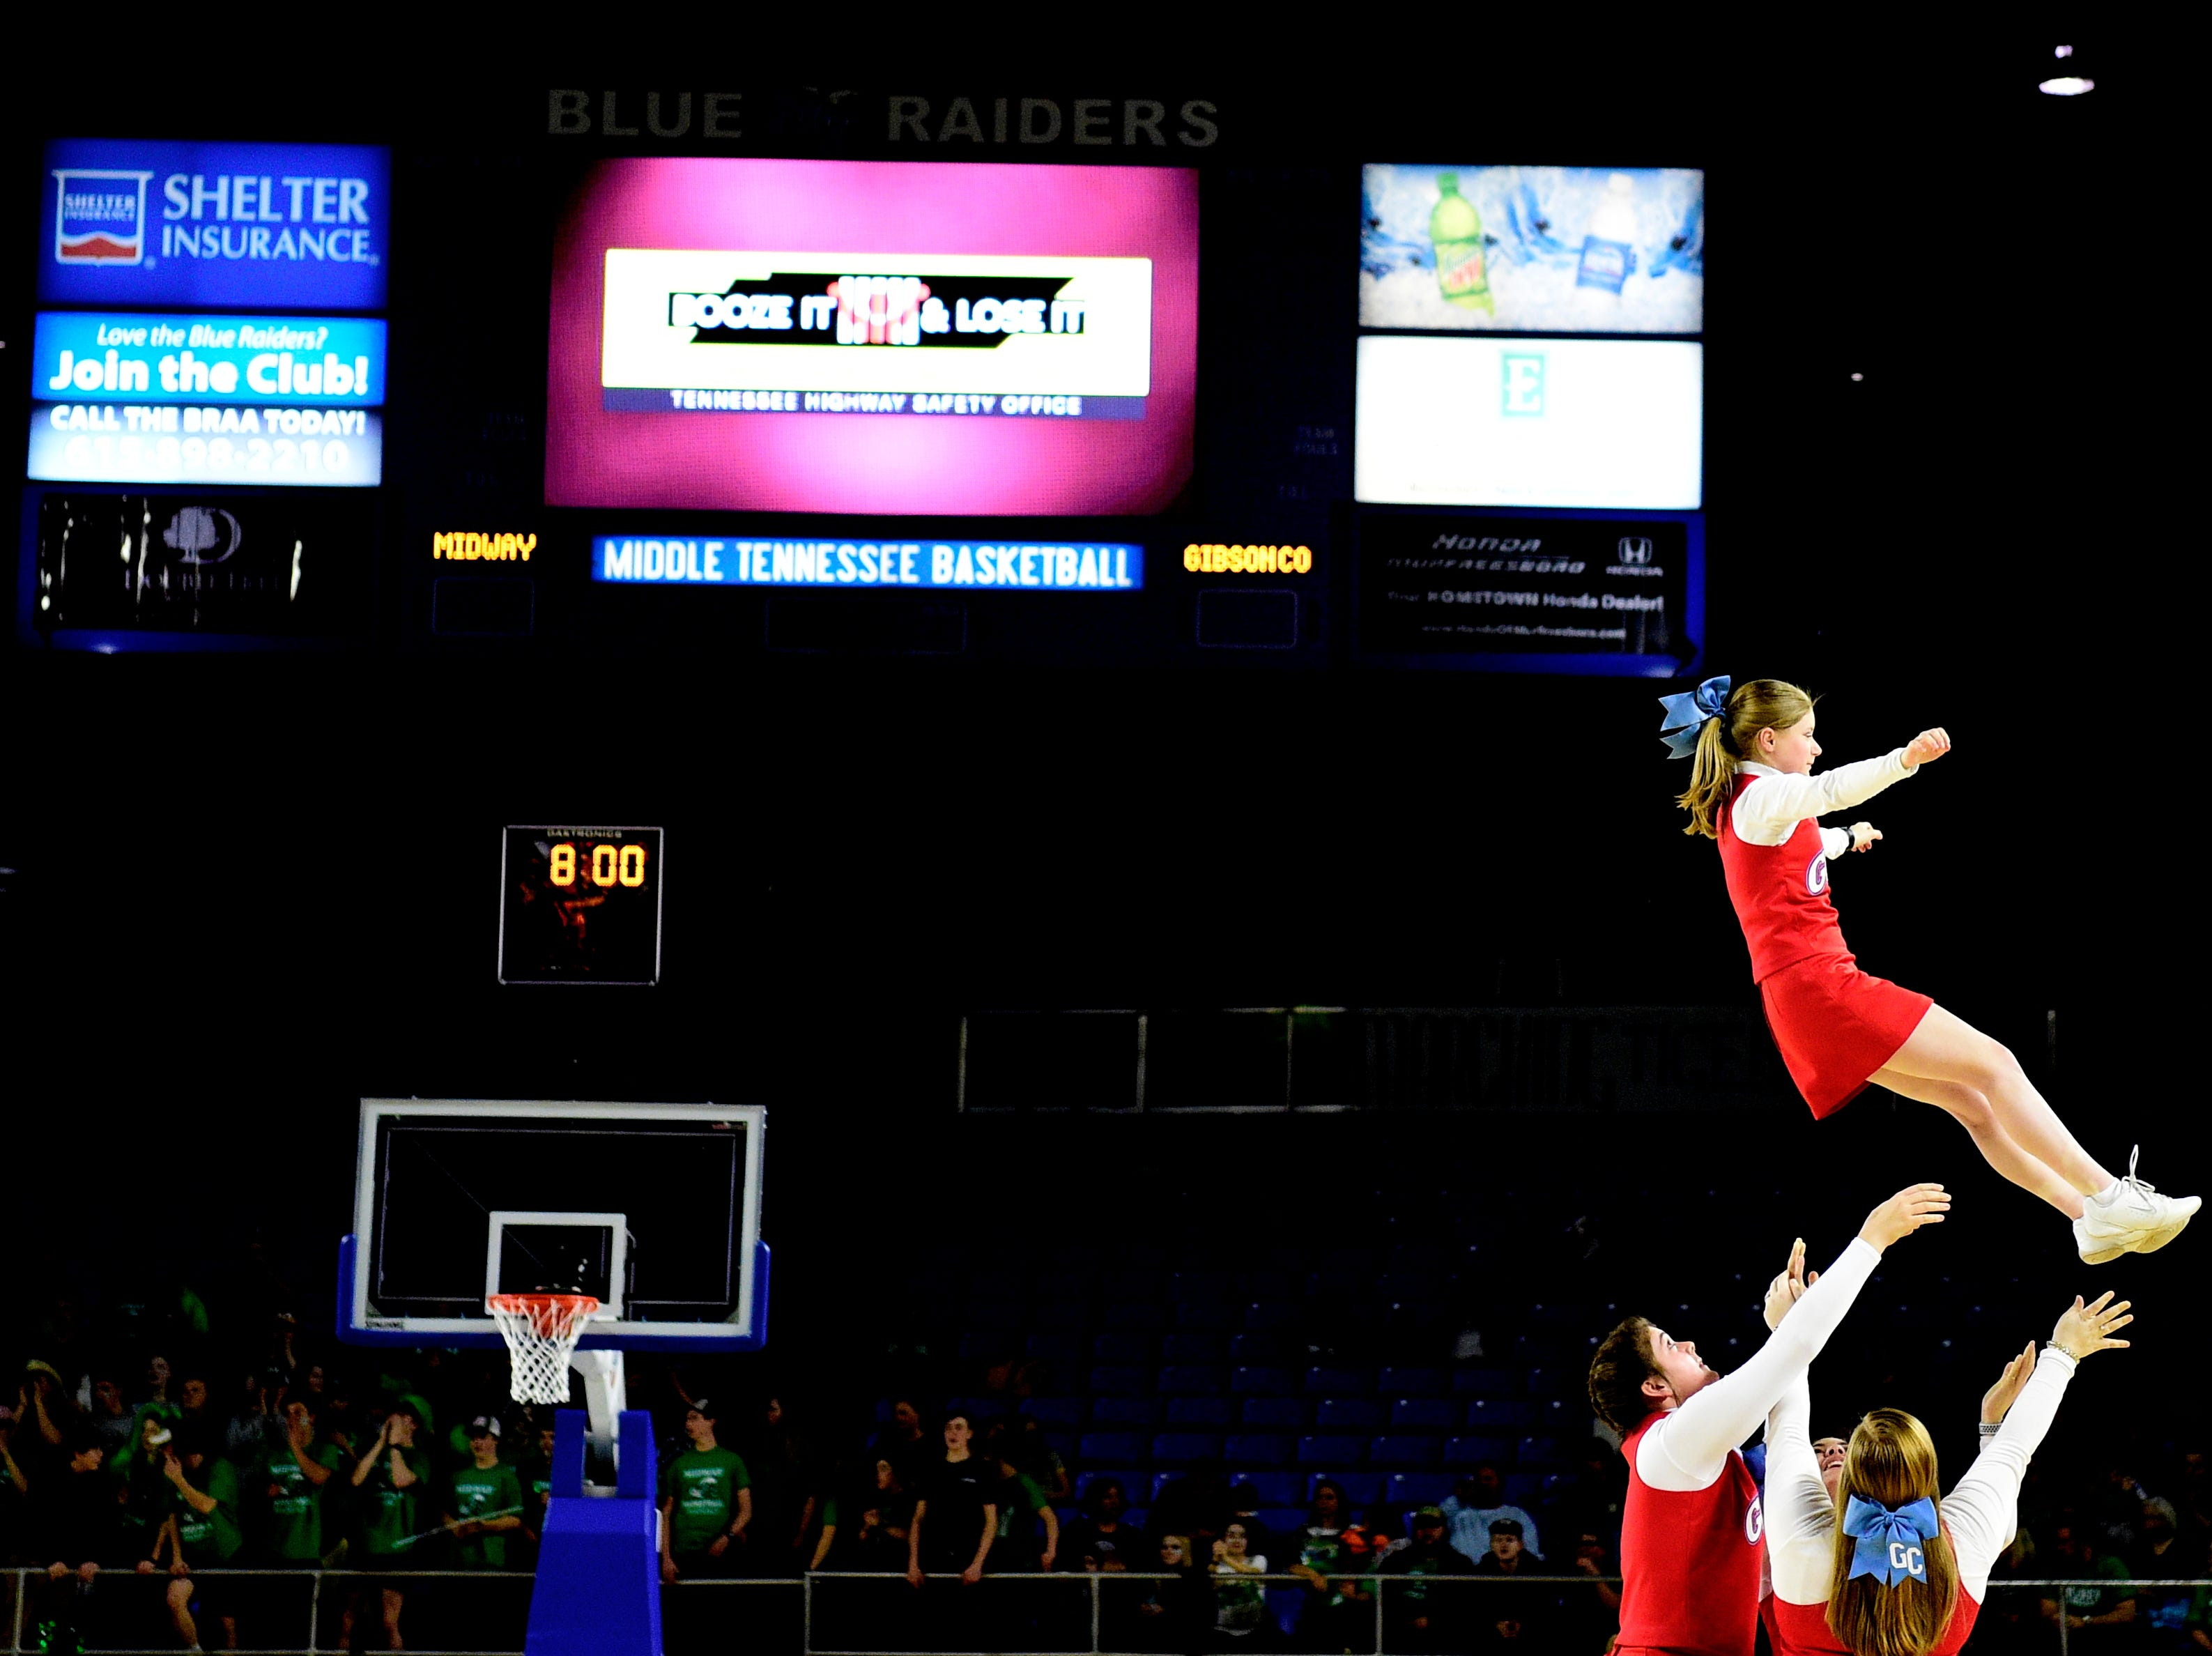 Gibson Co. cheerleaders perform during a game between Midway and Gibson County at the TSSAA girls state tournament at the Murphy Center in Murfreesboro, Tennessee on Friday, March 8, 2019.